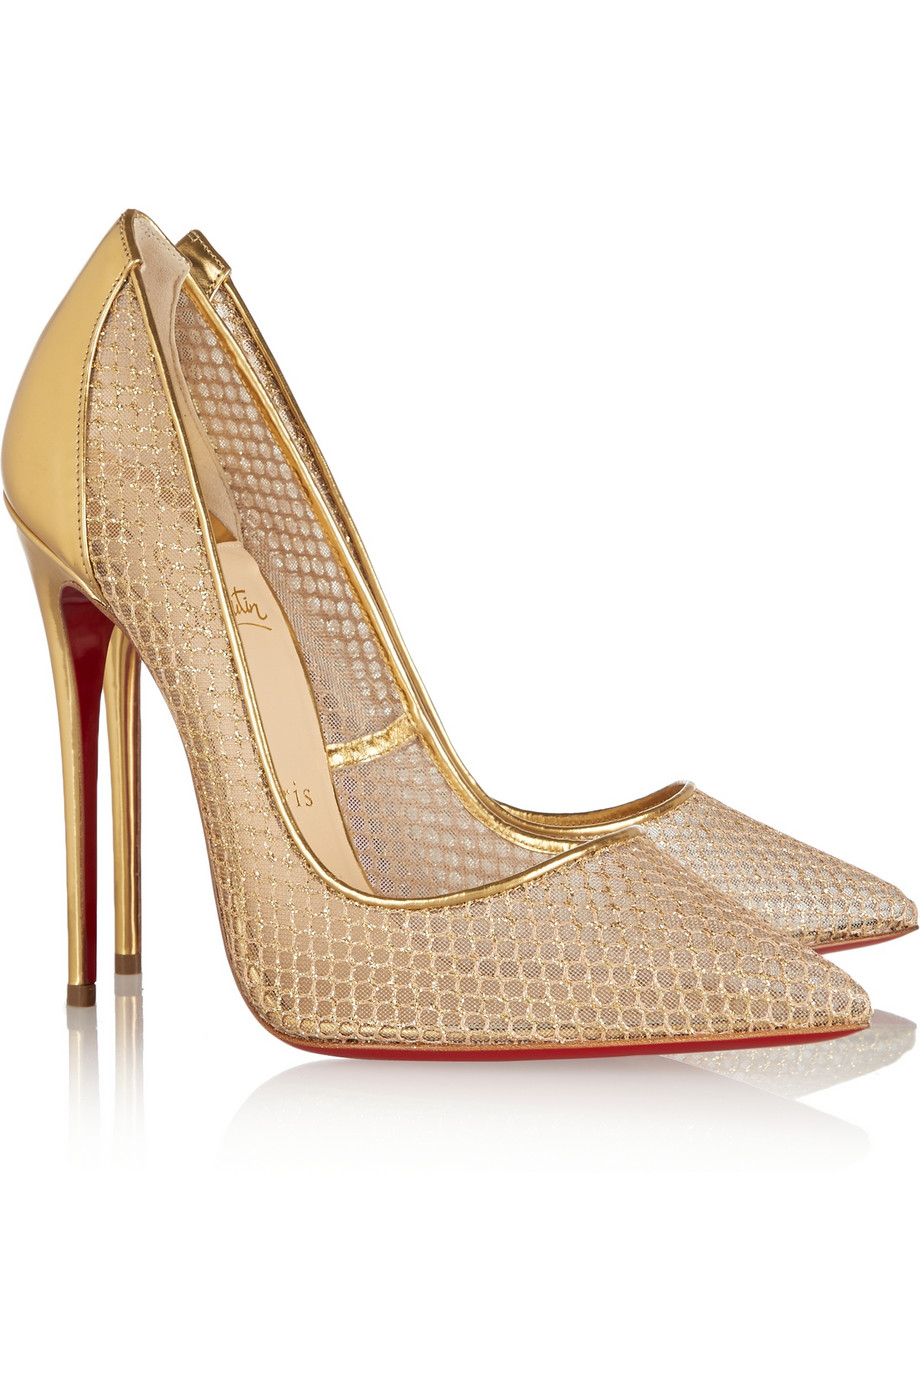 b67b70fb852 Christian Louboutin Follies Resille 120 Metallic Leather And Fishnet ...